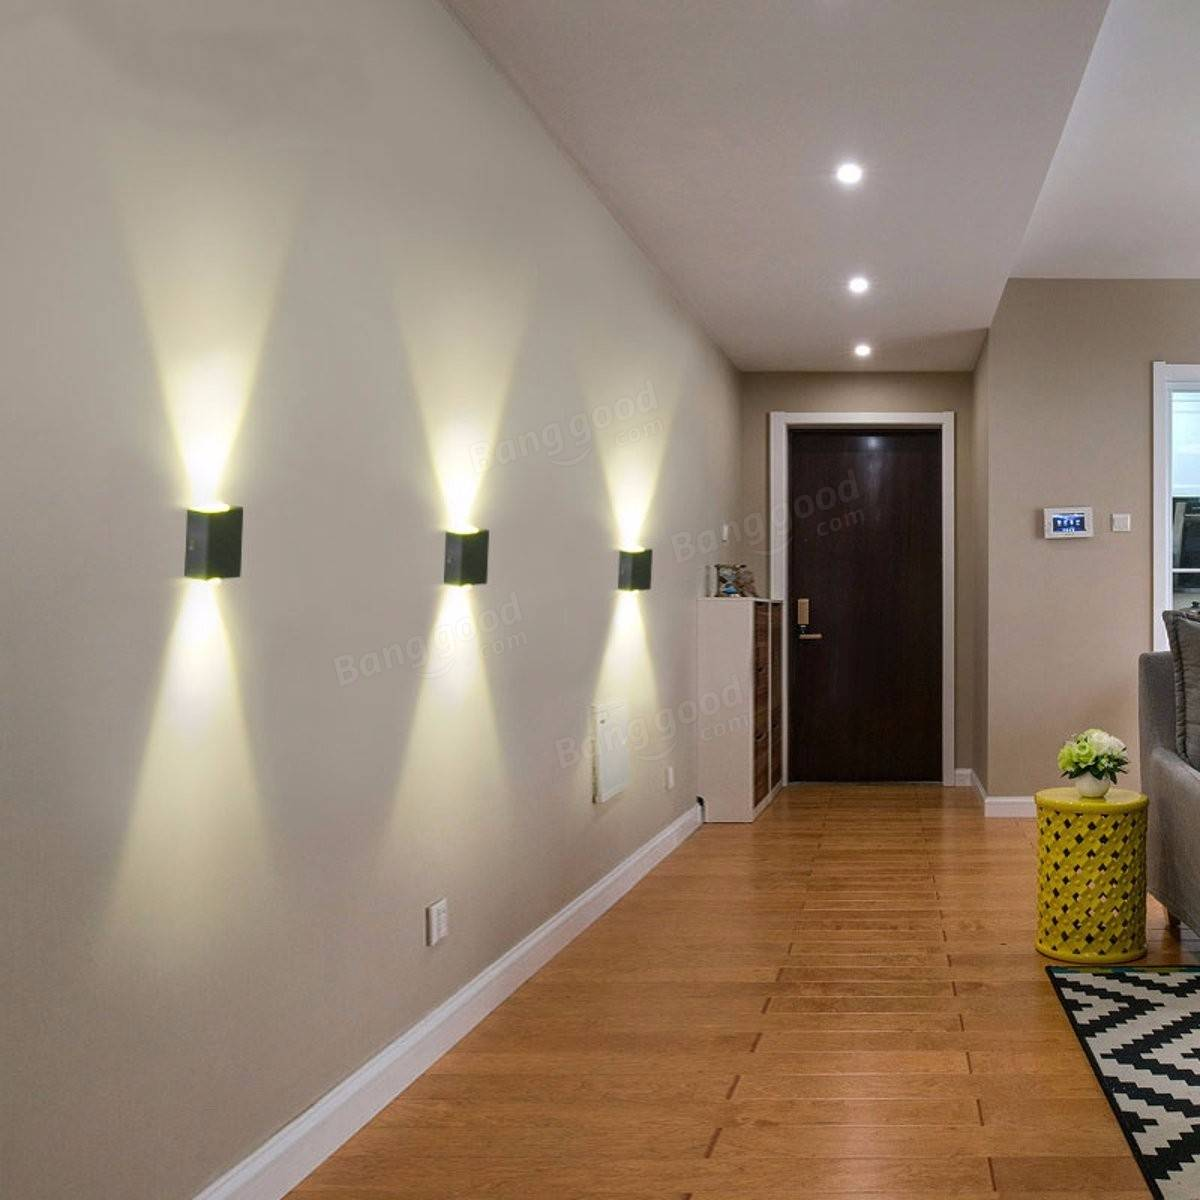 Aluminum 2W Modern LED Wall Light Up Down Sconce Lighting ... on Contemporary Wall Sconces Lighting id=43370